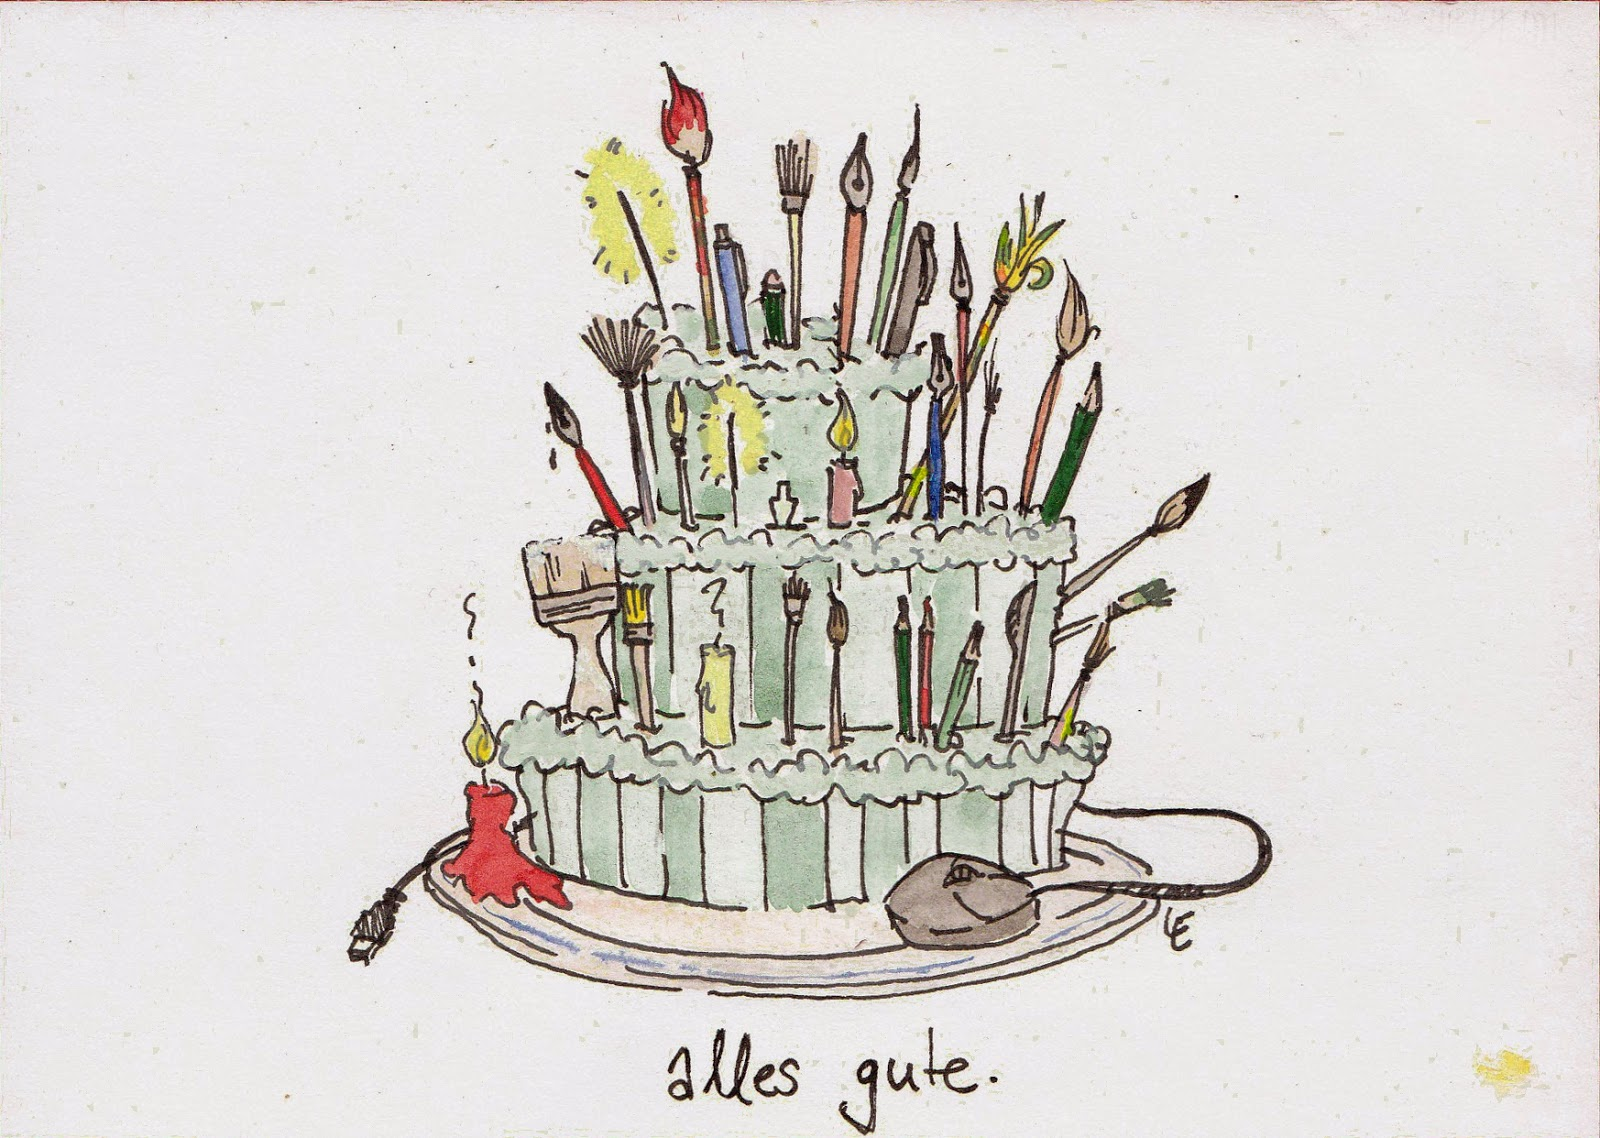 birthday cake decorated with artist implements